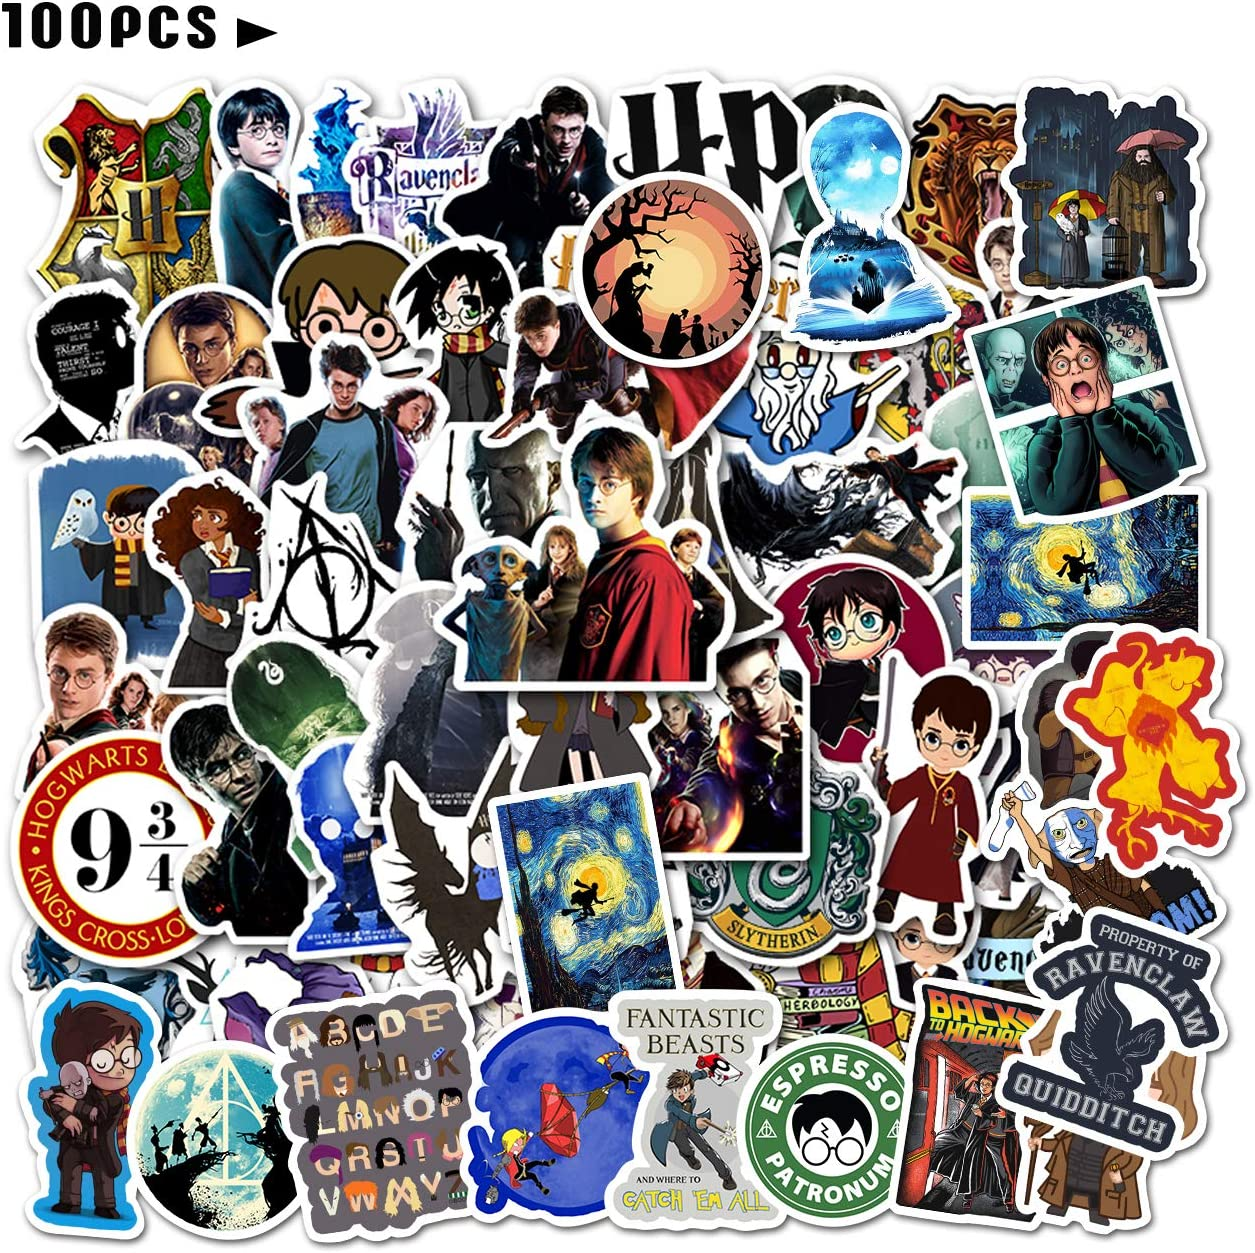 100PCS HARR/_y Potter Stickers and Decals Laptop Waterproof Vinyl Stickers Water Bottle House Skateboard Stickers for Kids Teens Boys Adults